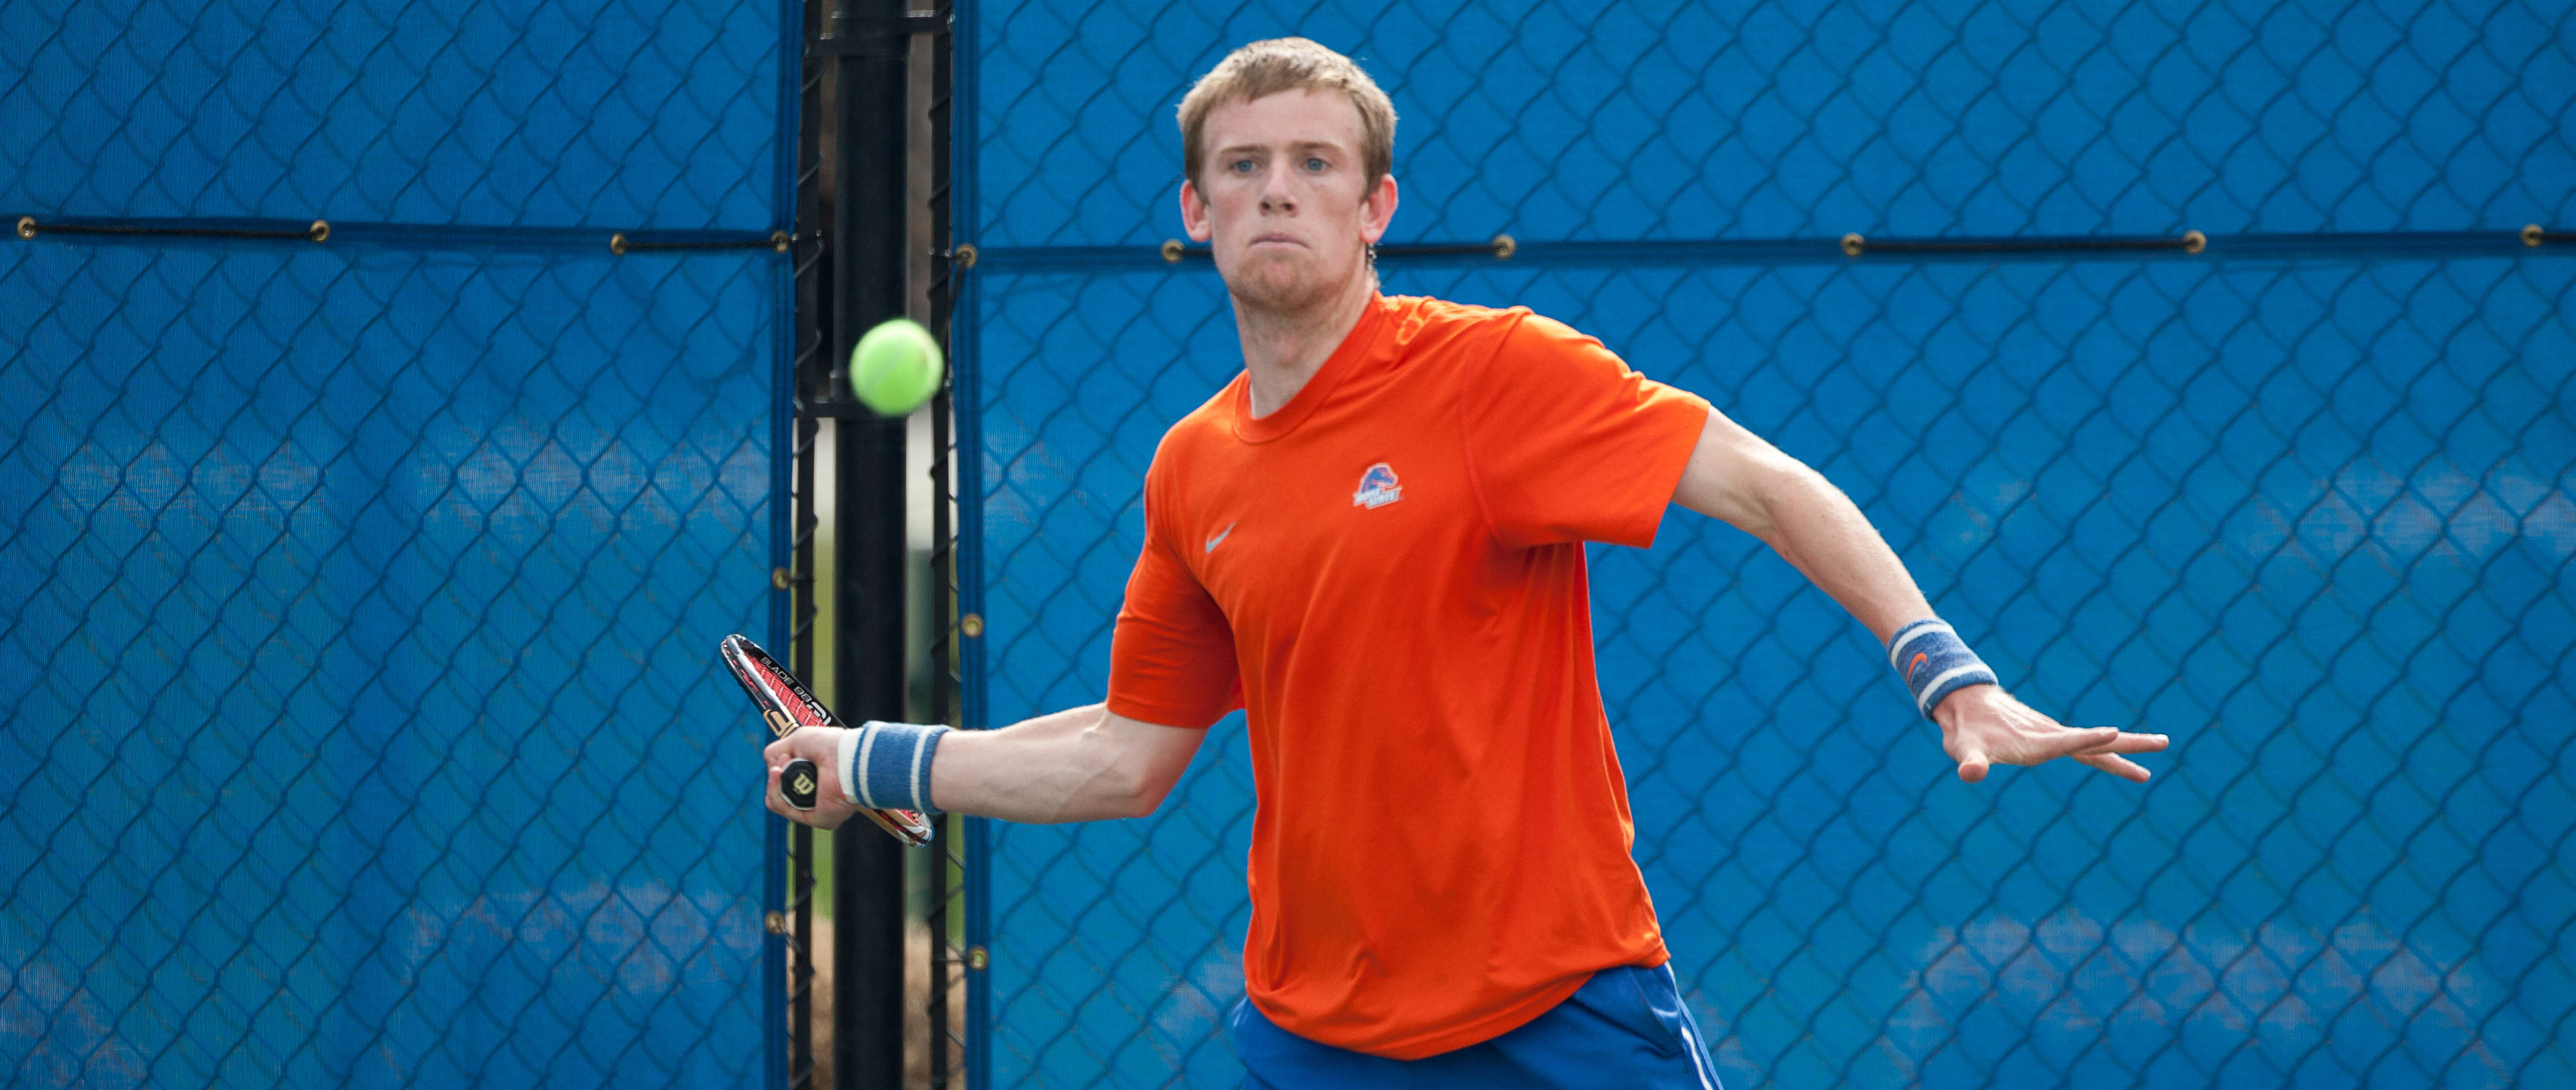 Andy Bettles ranked 54th nationally in singles.